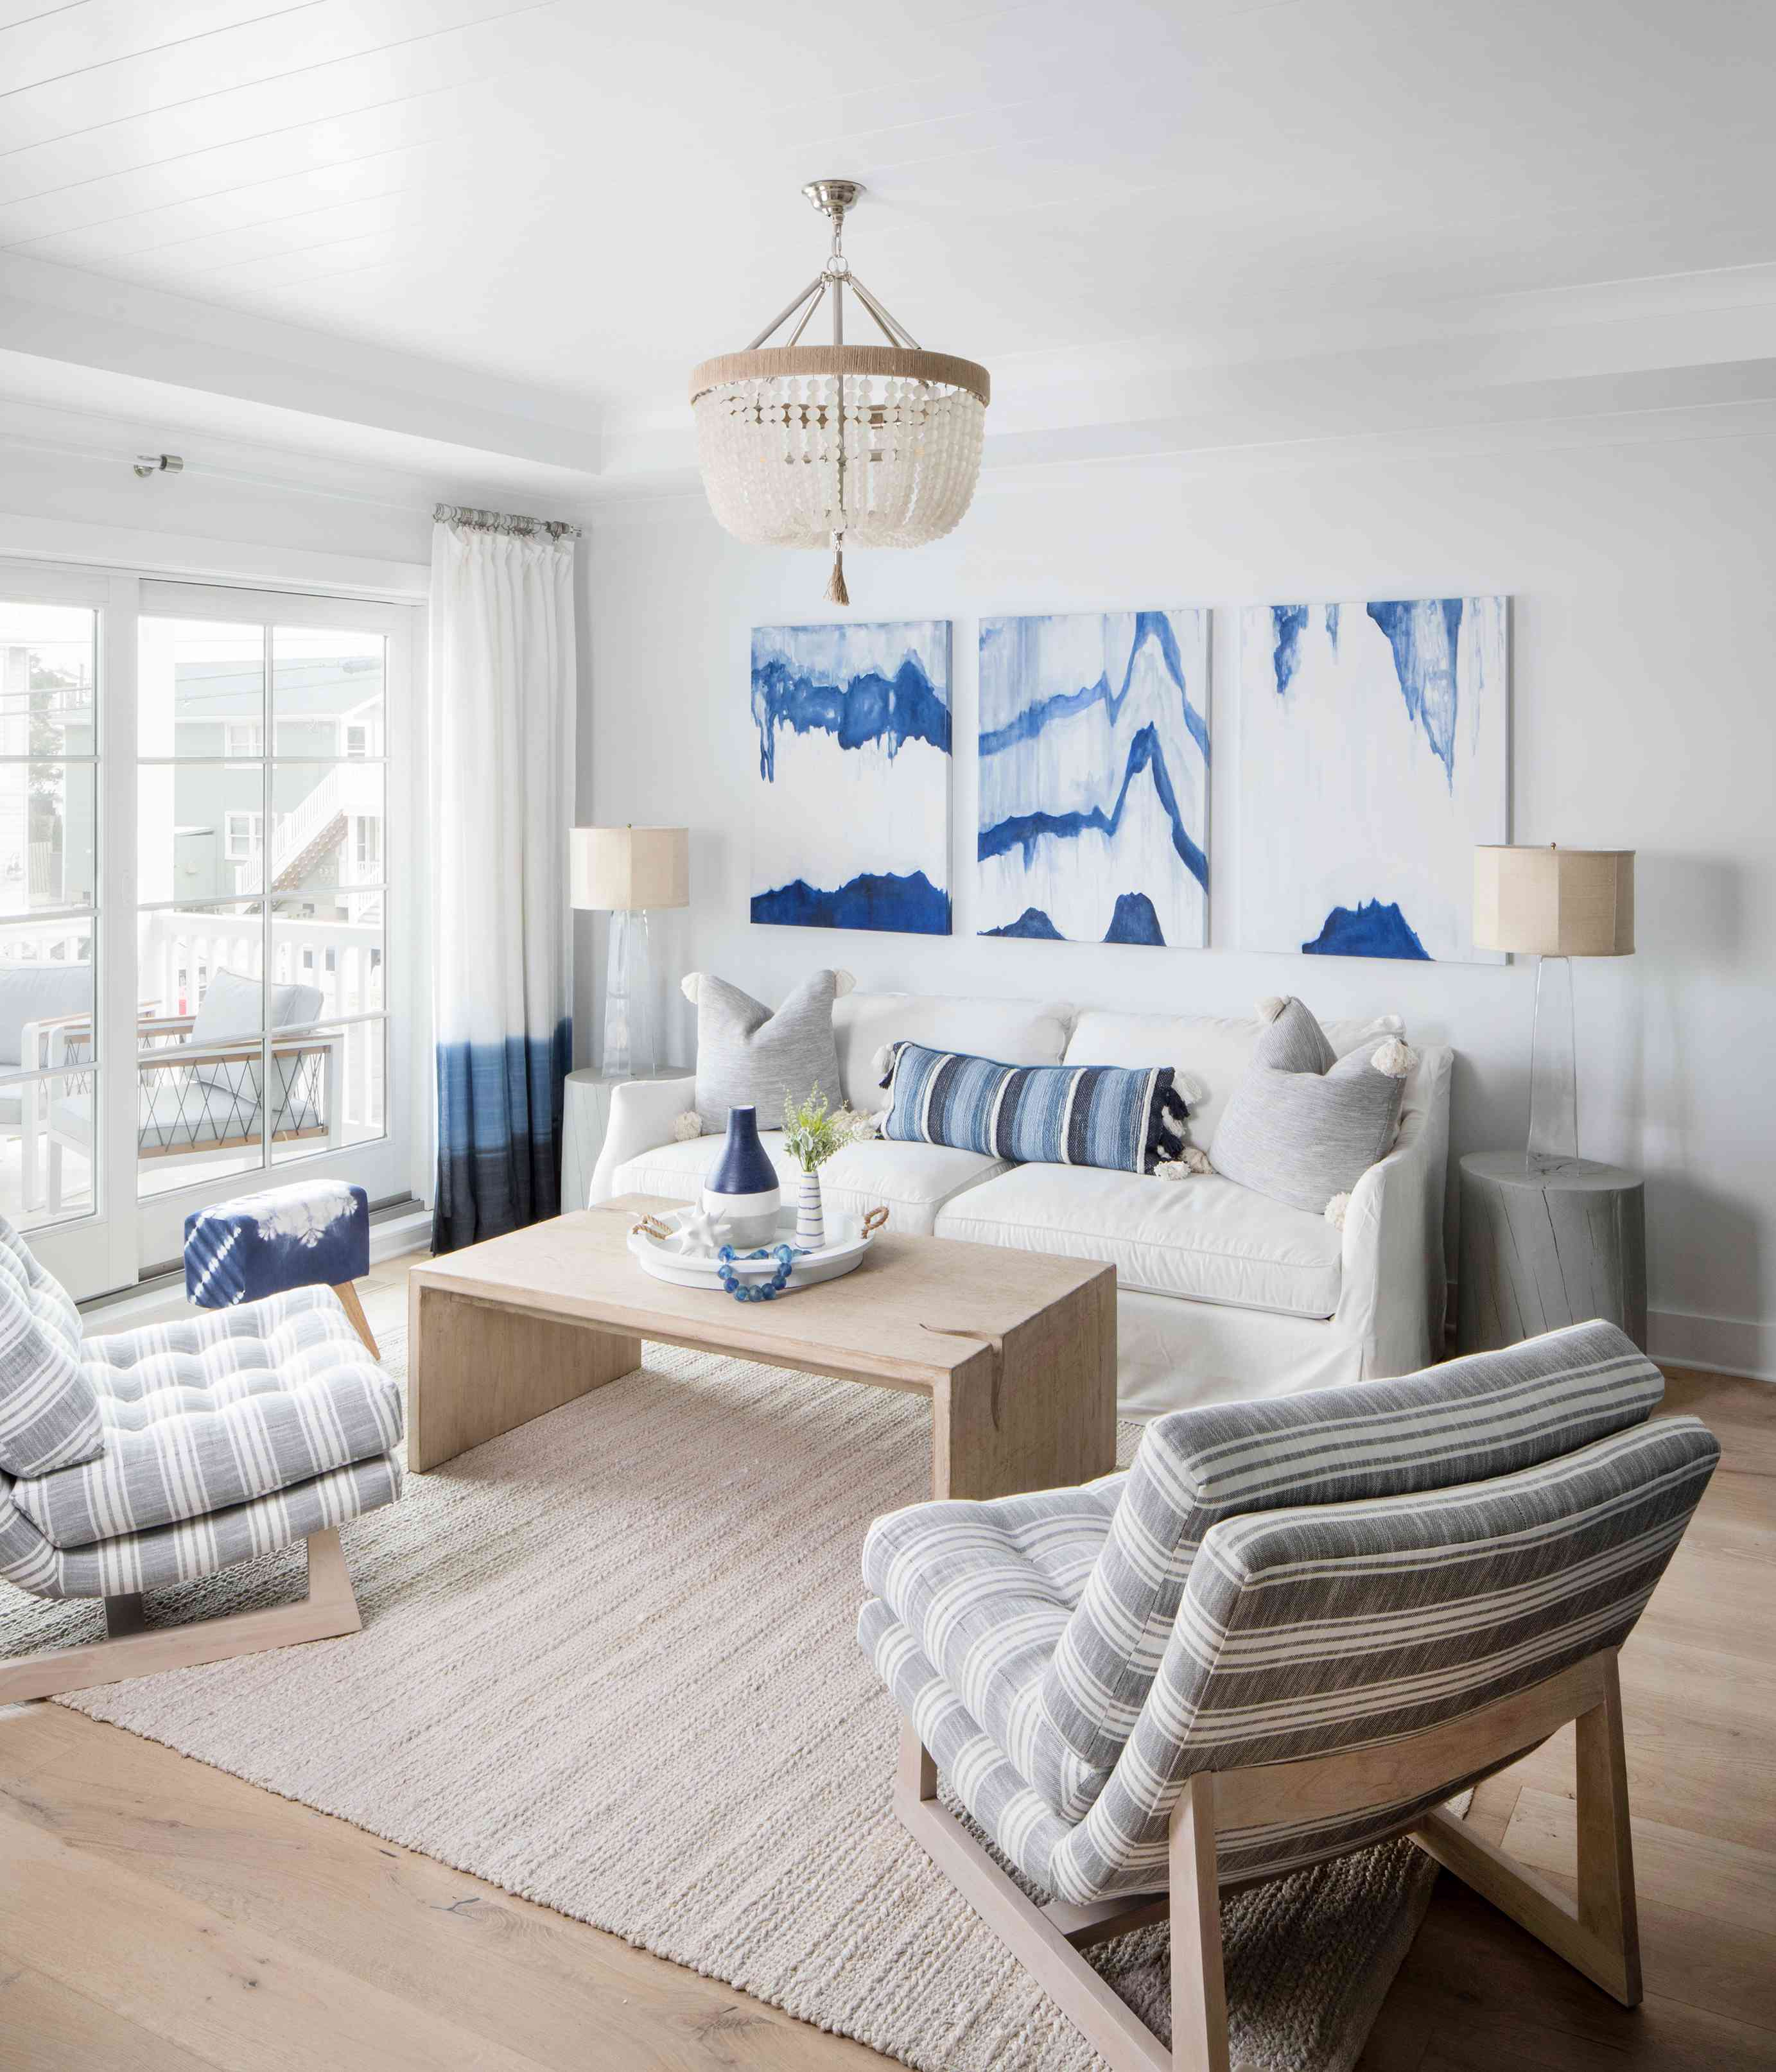 White oak floors are featured throughout the Long Beach Island home of Karen B. Wolfe